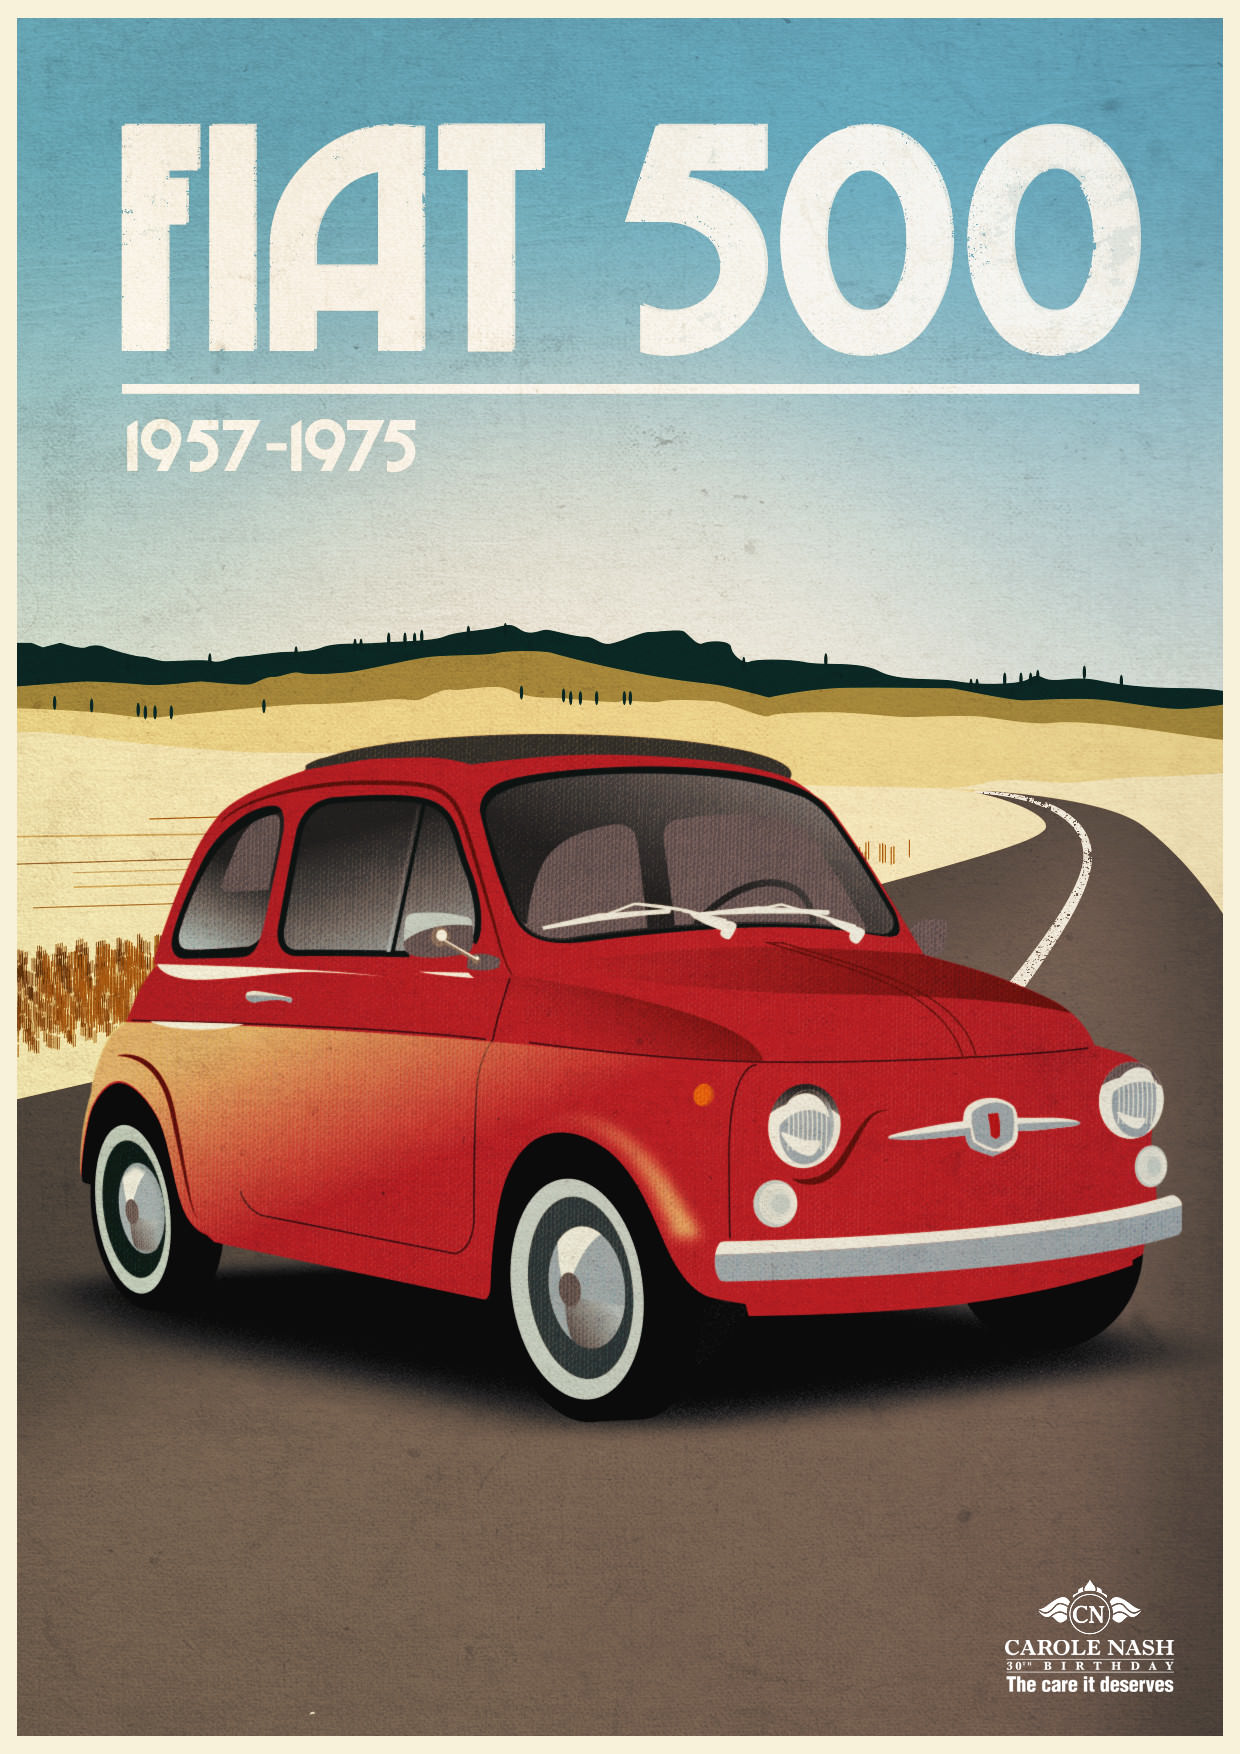 Retro Fiat 500 Illustration/Poster